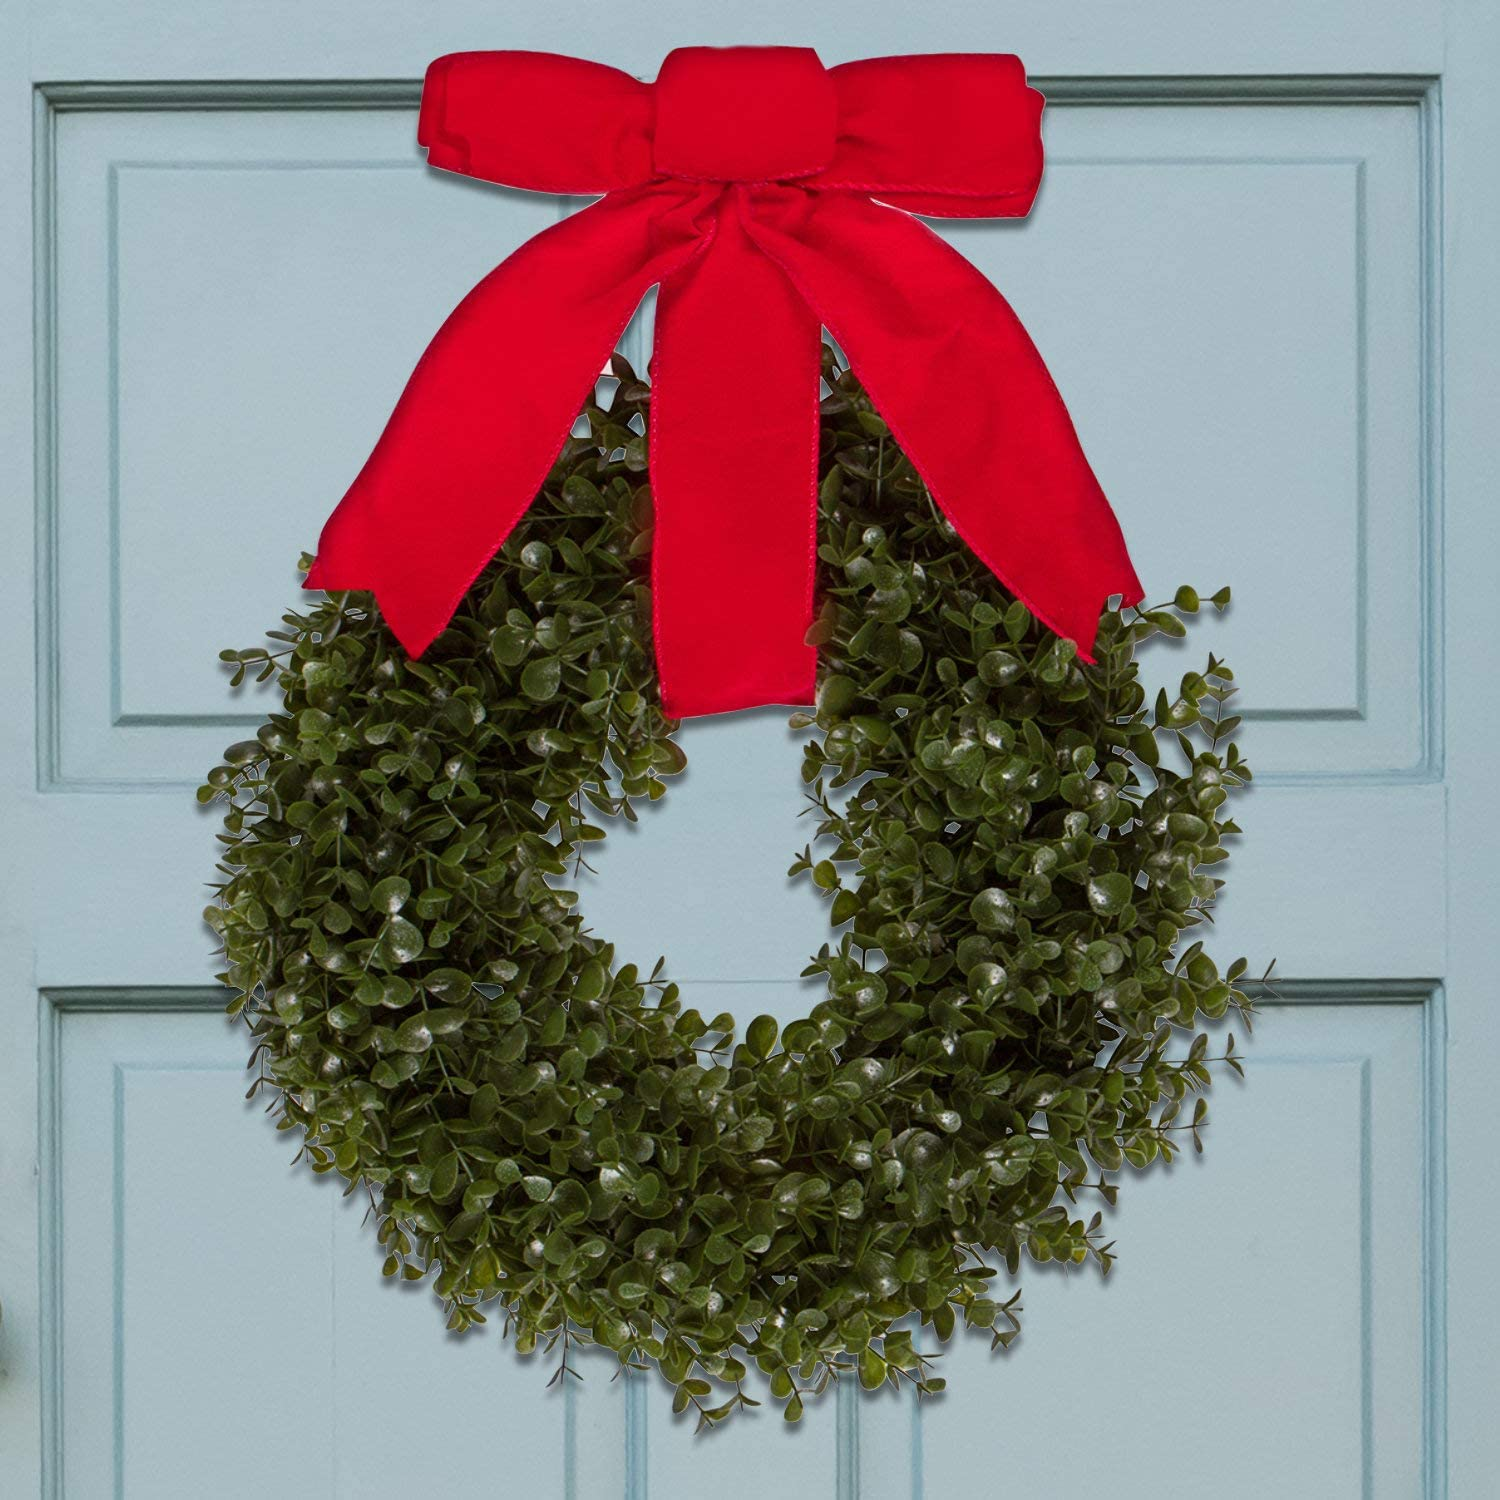 Orchid & Ivy 17-Inch Green Artificial Boxwood Wreath with Red Hanging Ribbon - Outdoor Indoor All-Weather Farmhouse Decor Front Door Wall Hanging Christmas Decoration